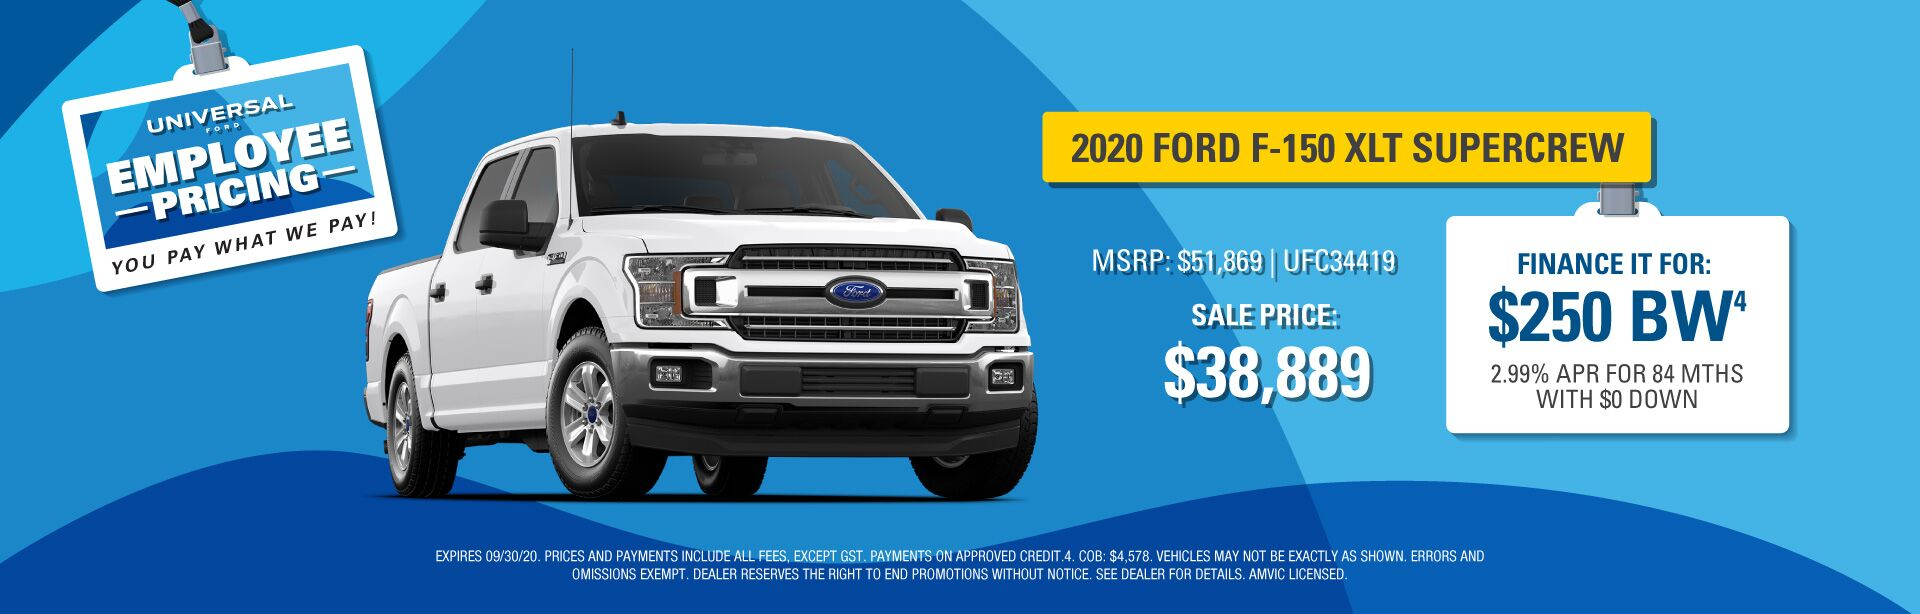 Employee Pricing - F-150 XLT